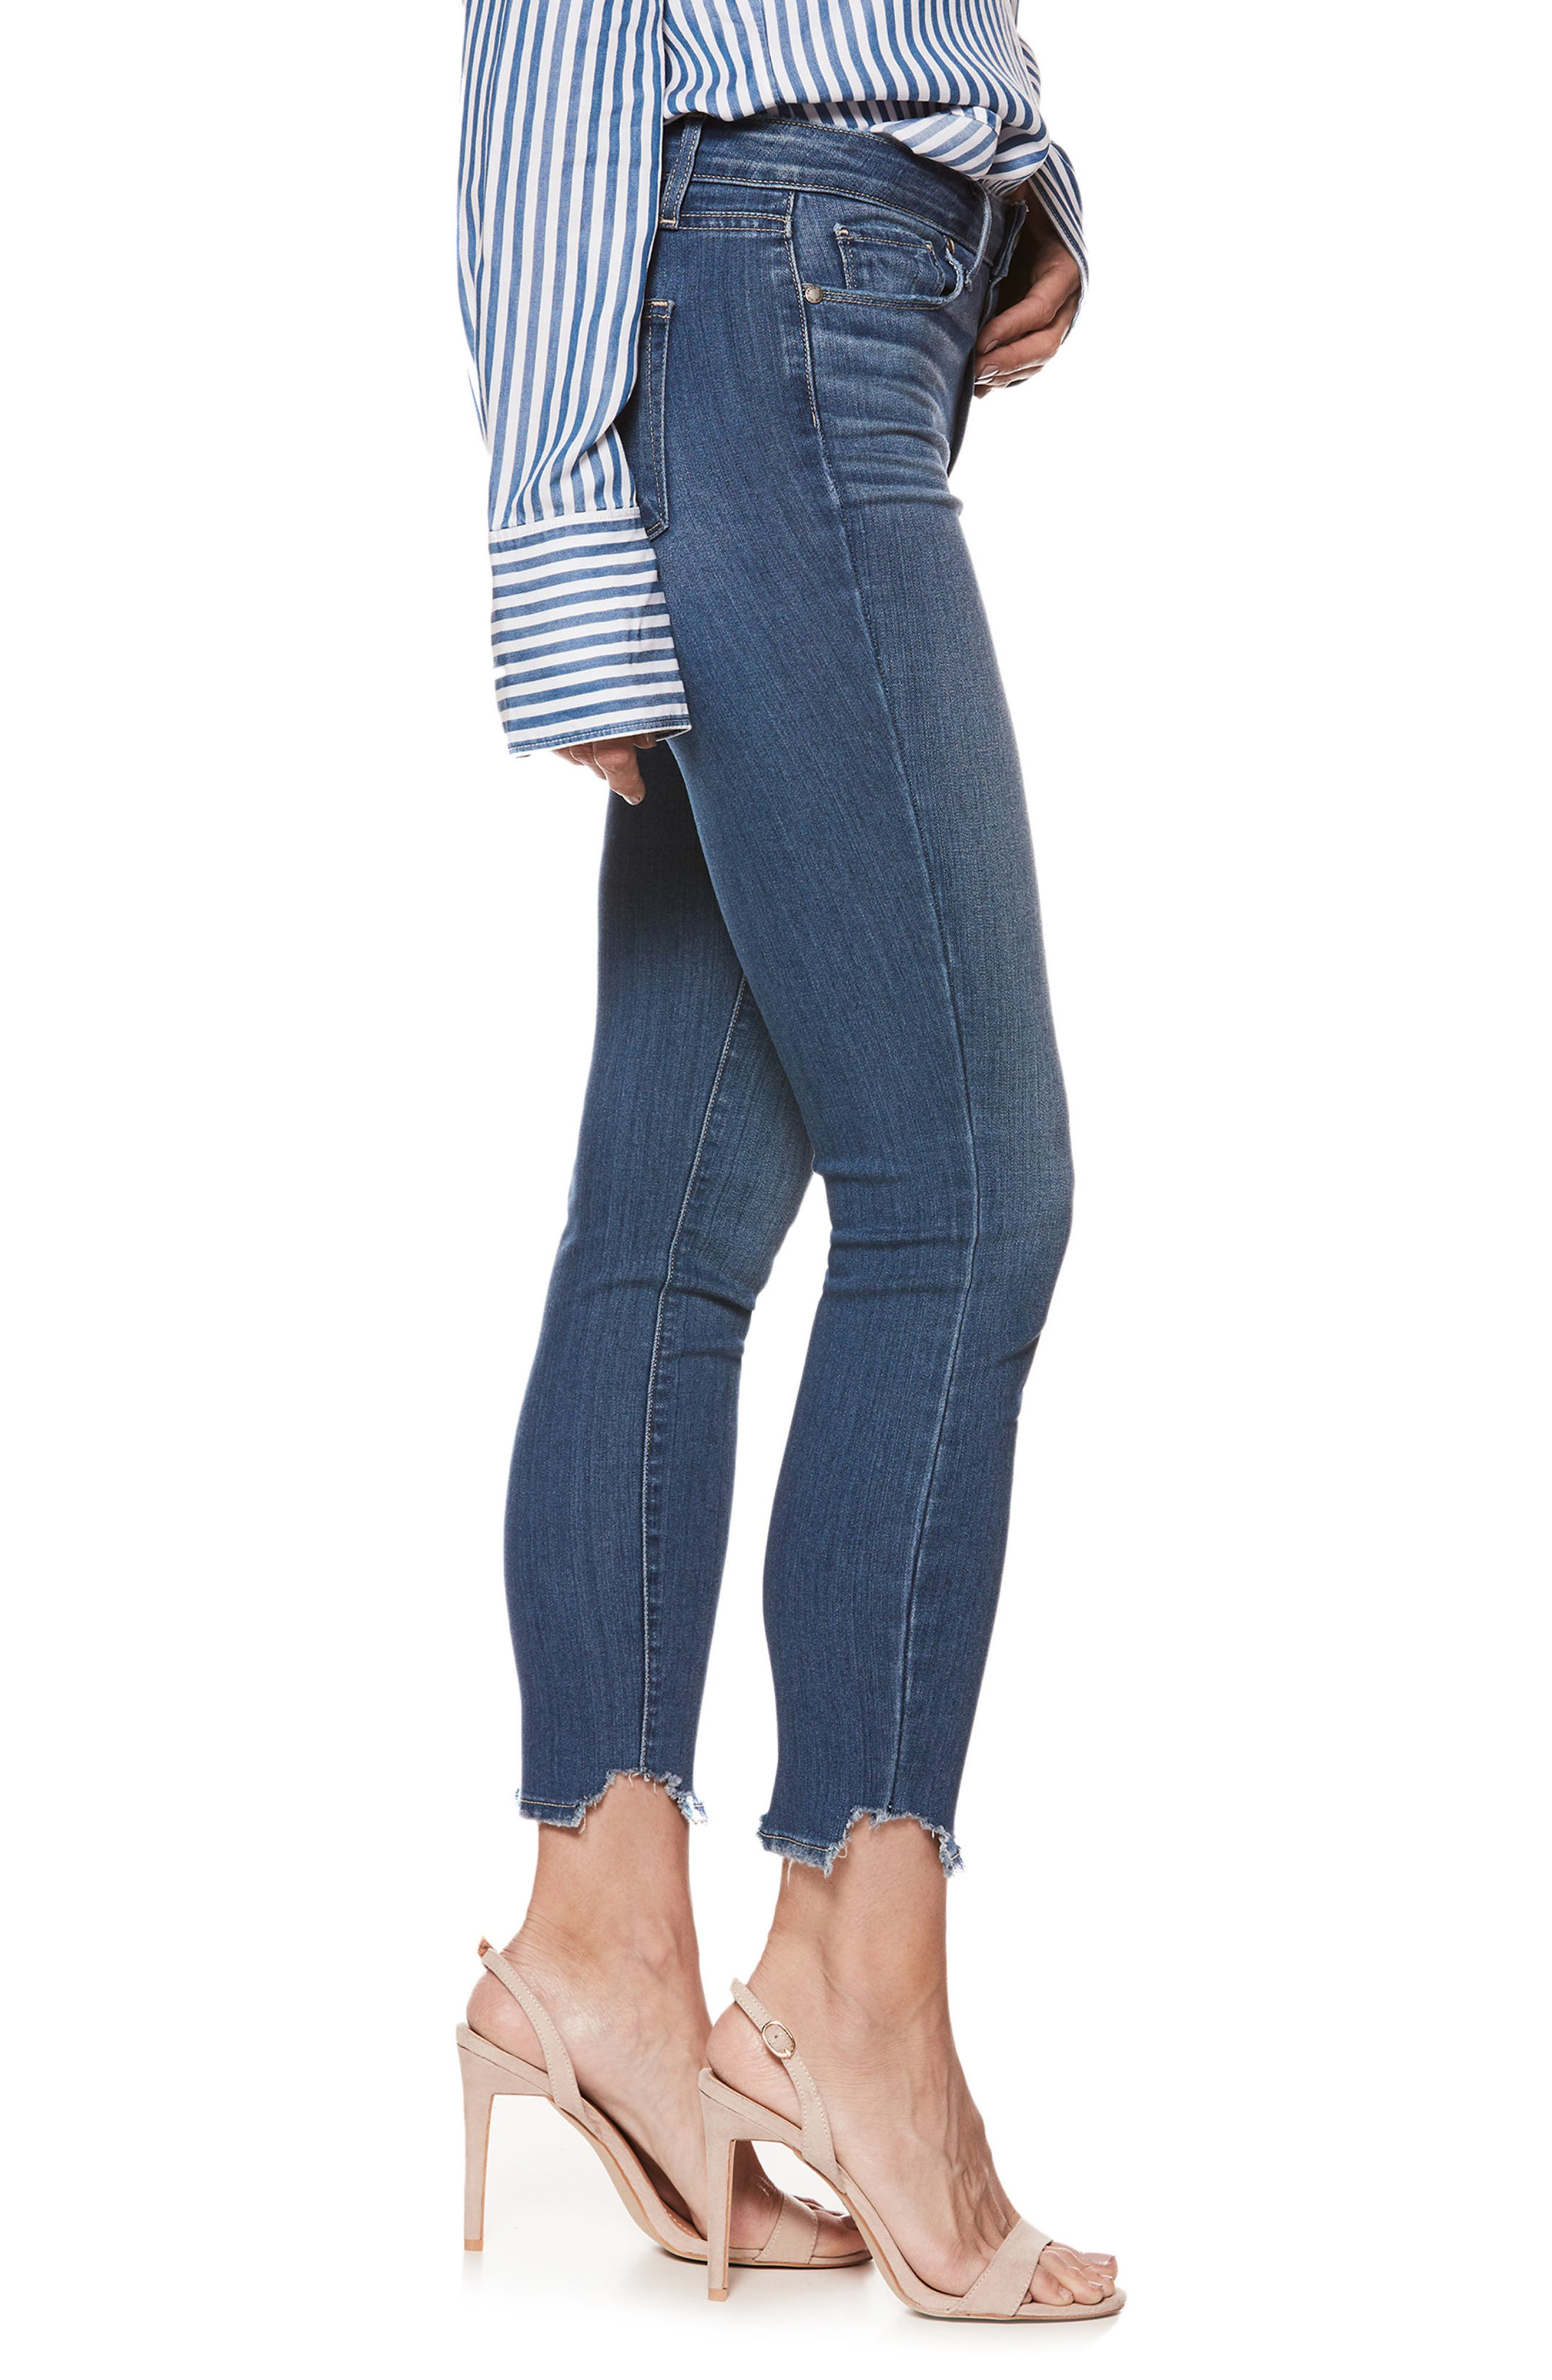 Transcend - Hoxton High Waist Crop Skinny Jeans,                             Alternate thumbnail 4, color,                             Lived In Henderson